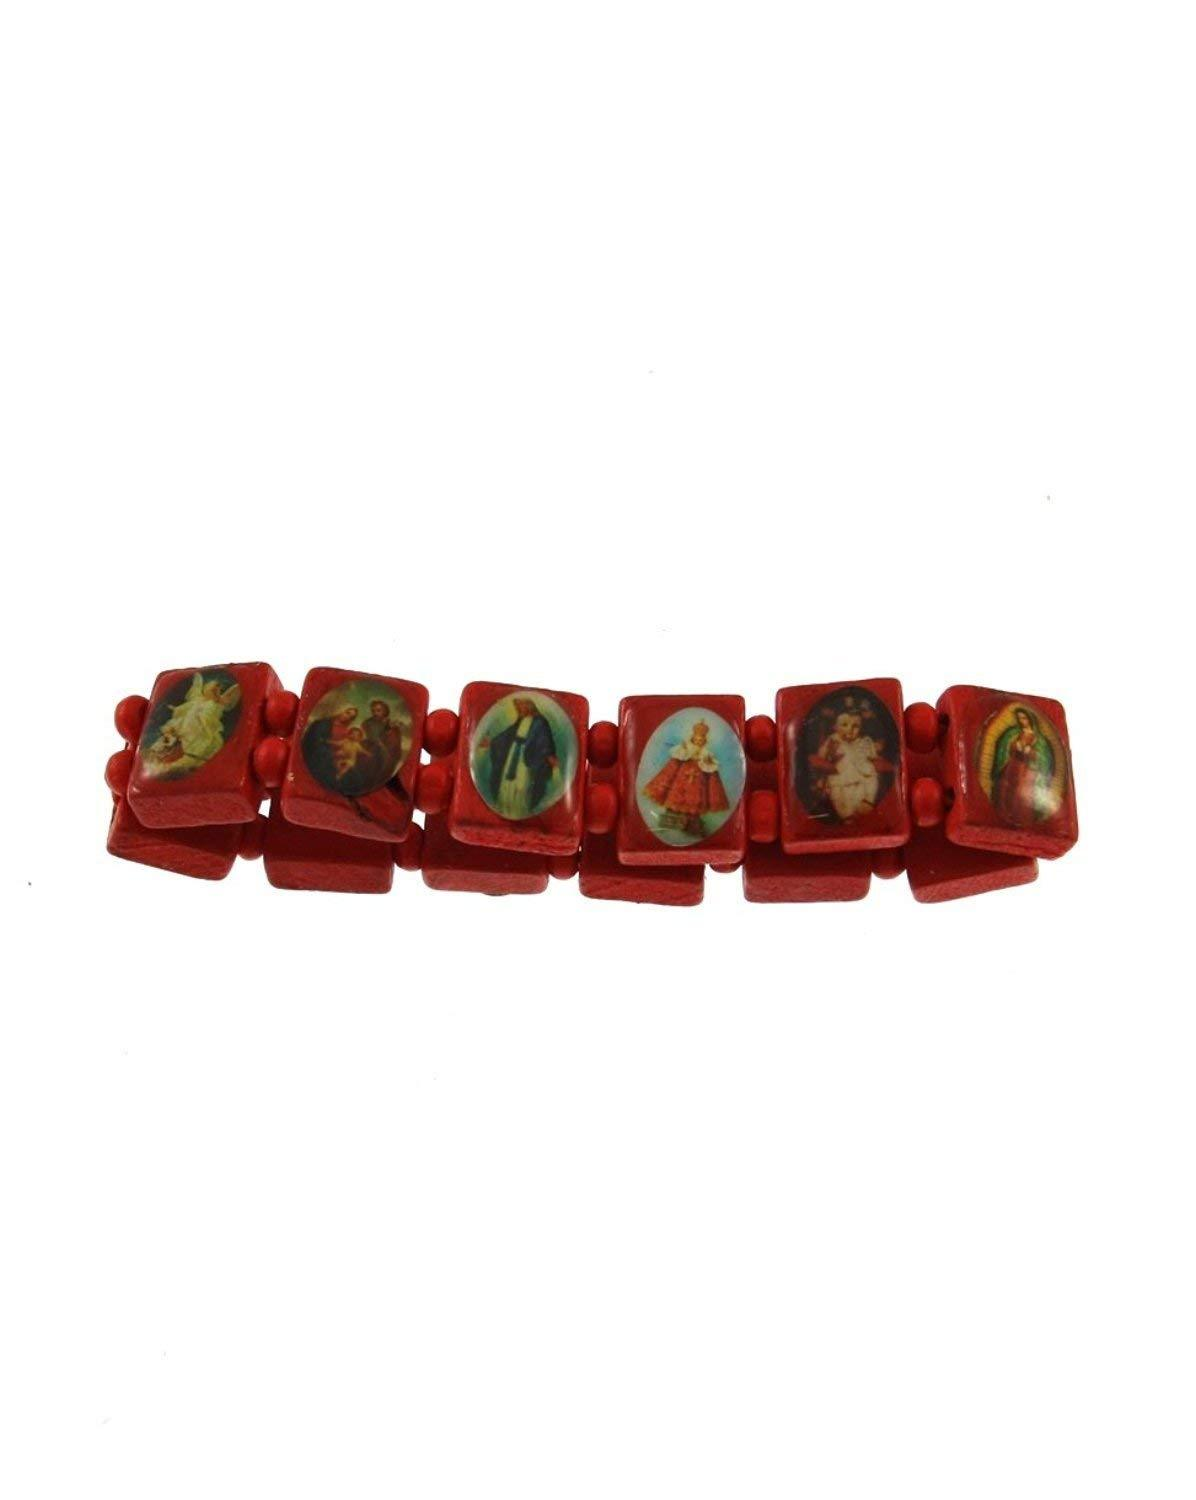 Red Wooden Religious All Saints Jesus Elasticated Stretch Bracelet Bangle Bracelet - Stockpoint Apparel Outlet